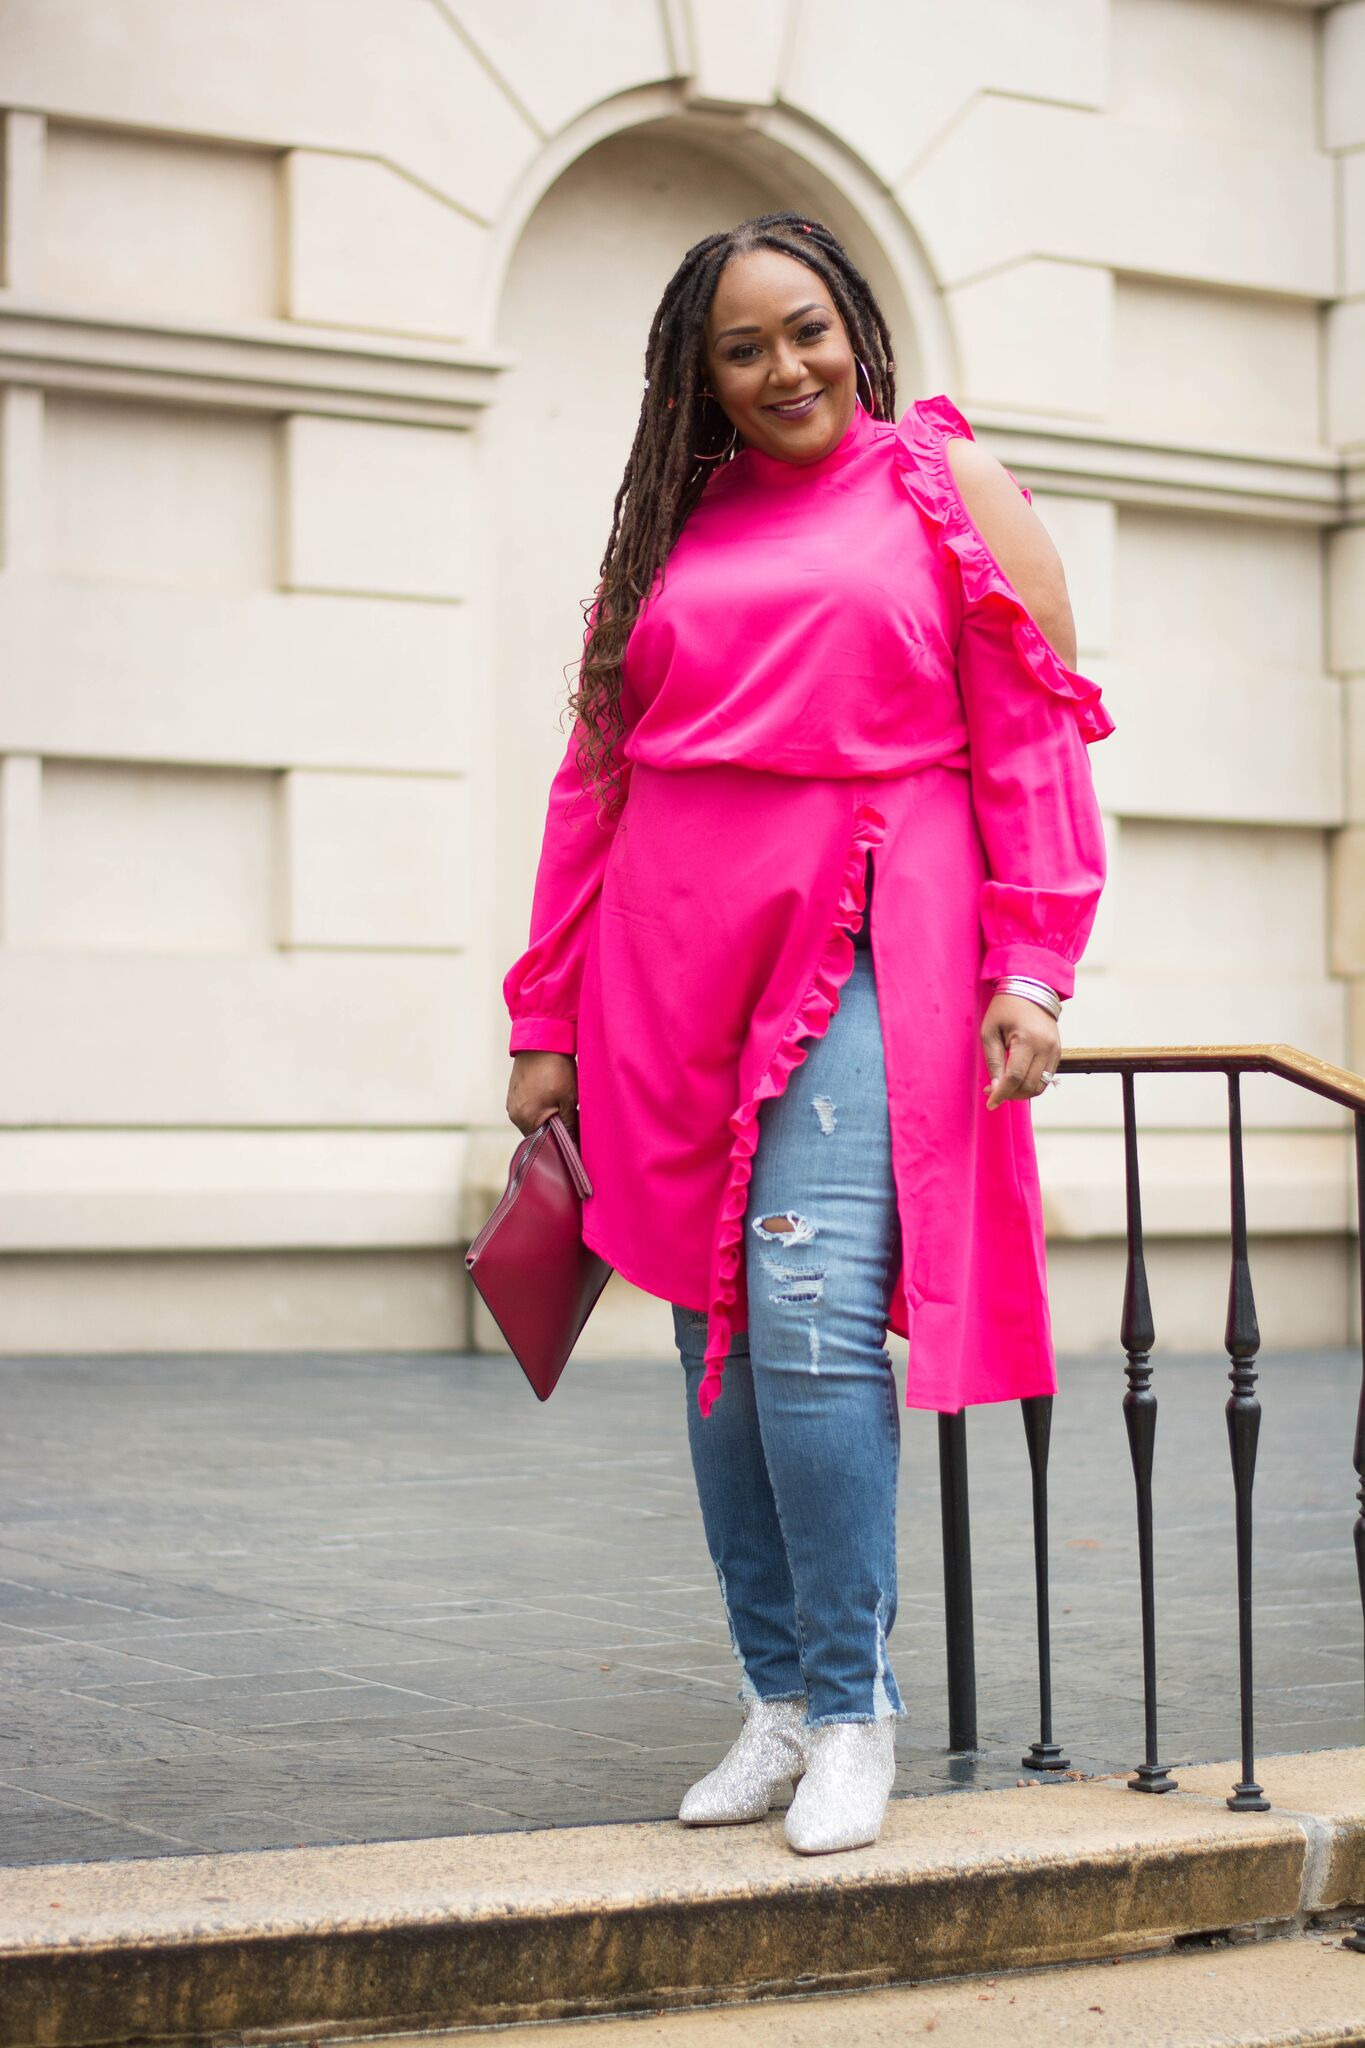 How To Wear A Dress Over Jeans